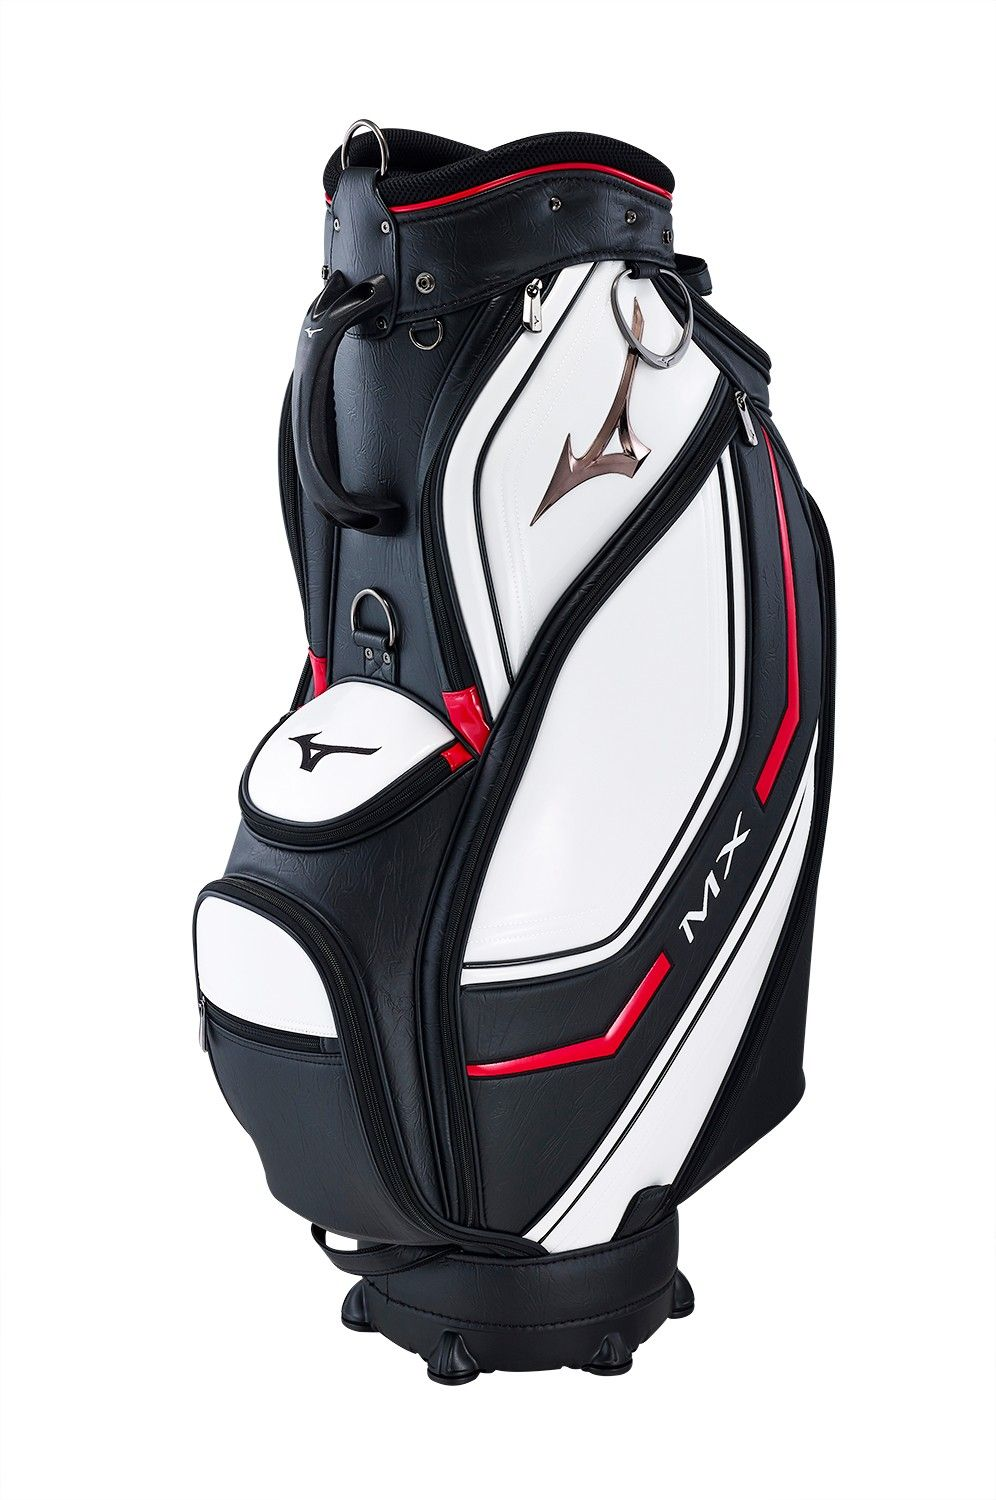 8c9697e2fced MIZUNO GOLF BAG | Tee time | Golf bags, Golf, Us open golf